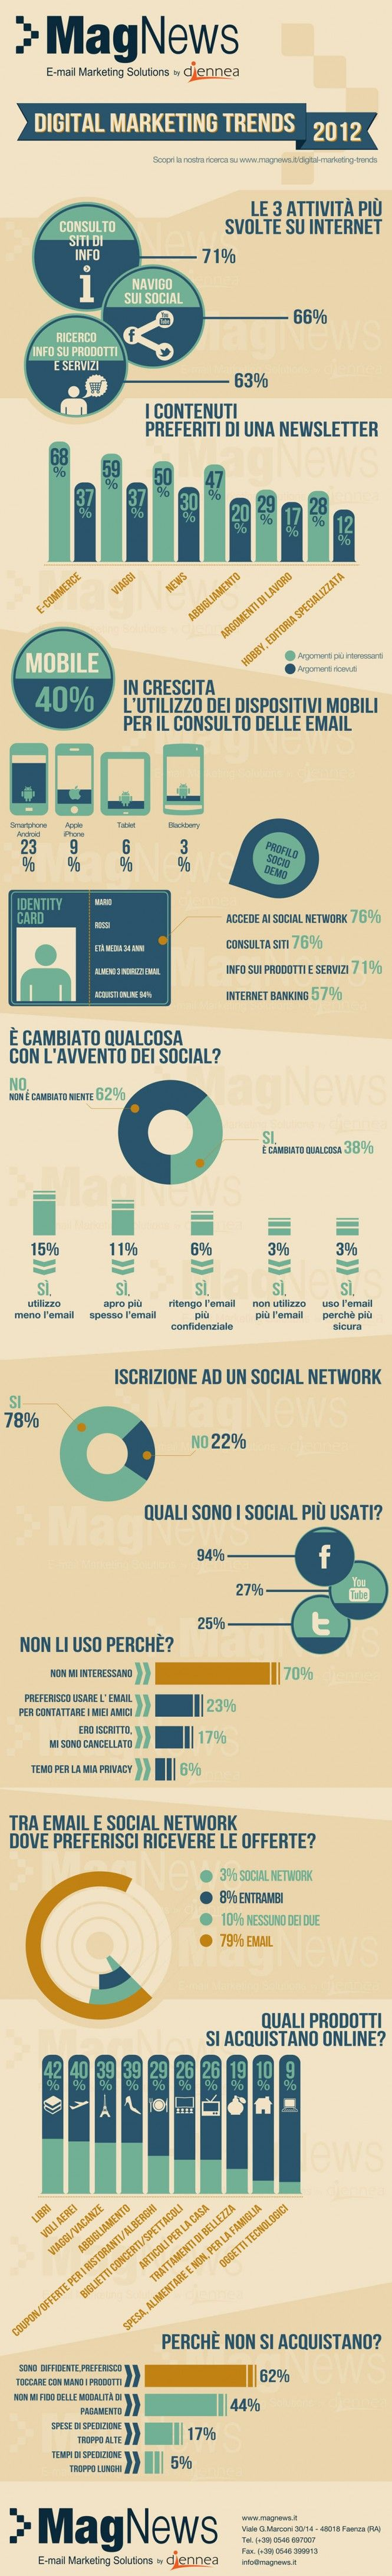 I trend del Digital Marketing italiano del 2012 in un'infografica #infografica #infographic